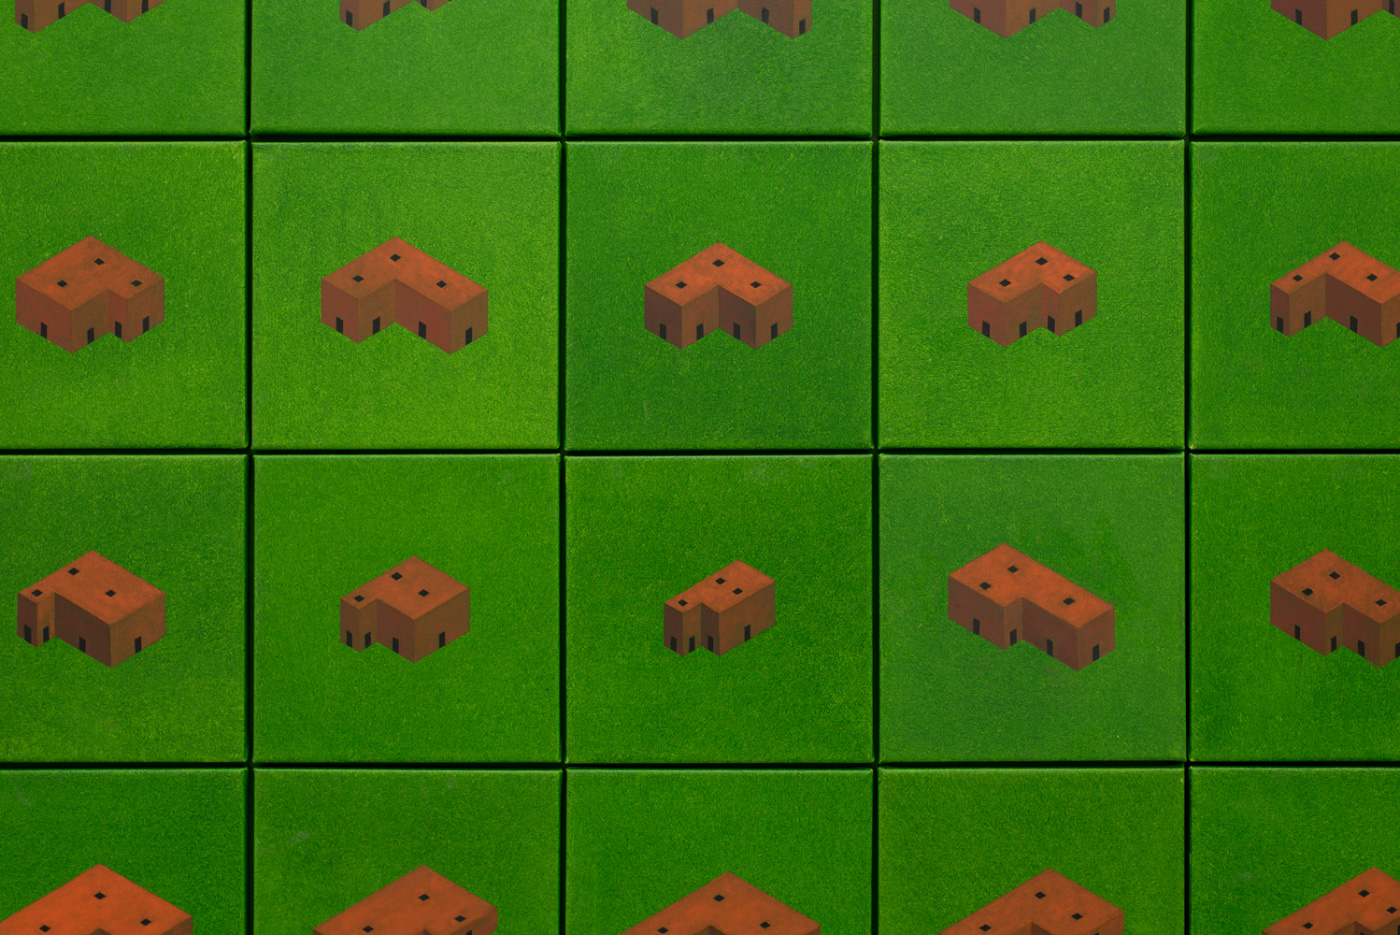 Diagram of repeating buildings on green squares, from Pezo von Ellrichshausen